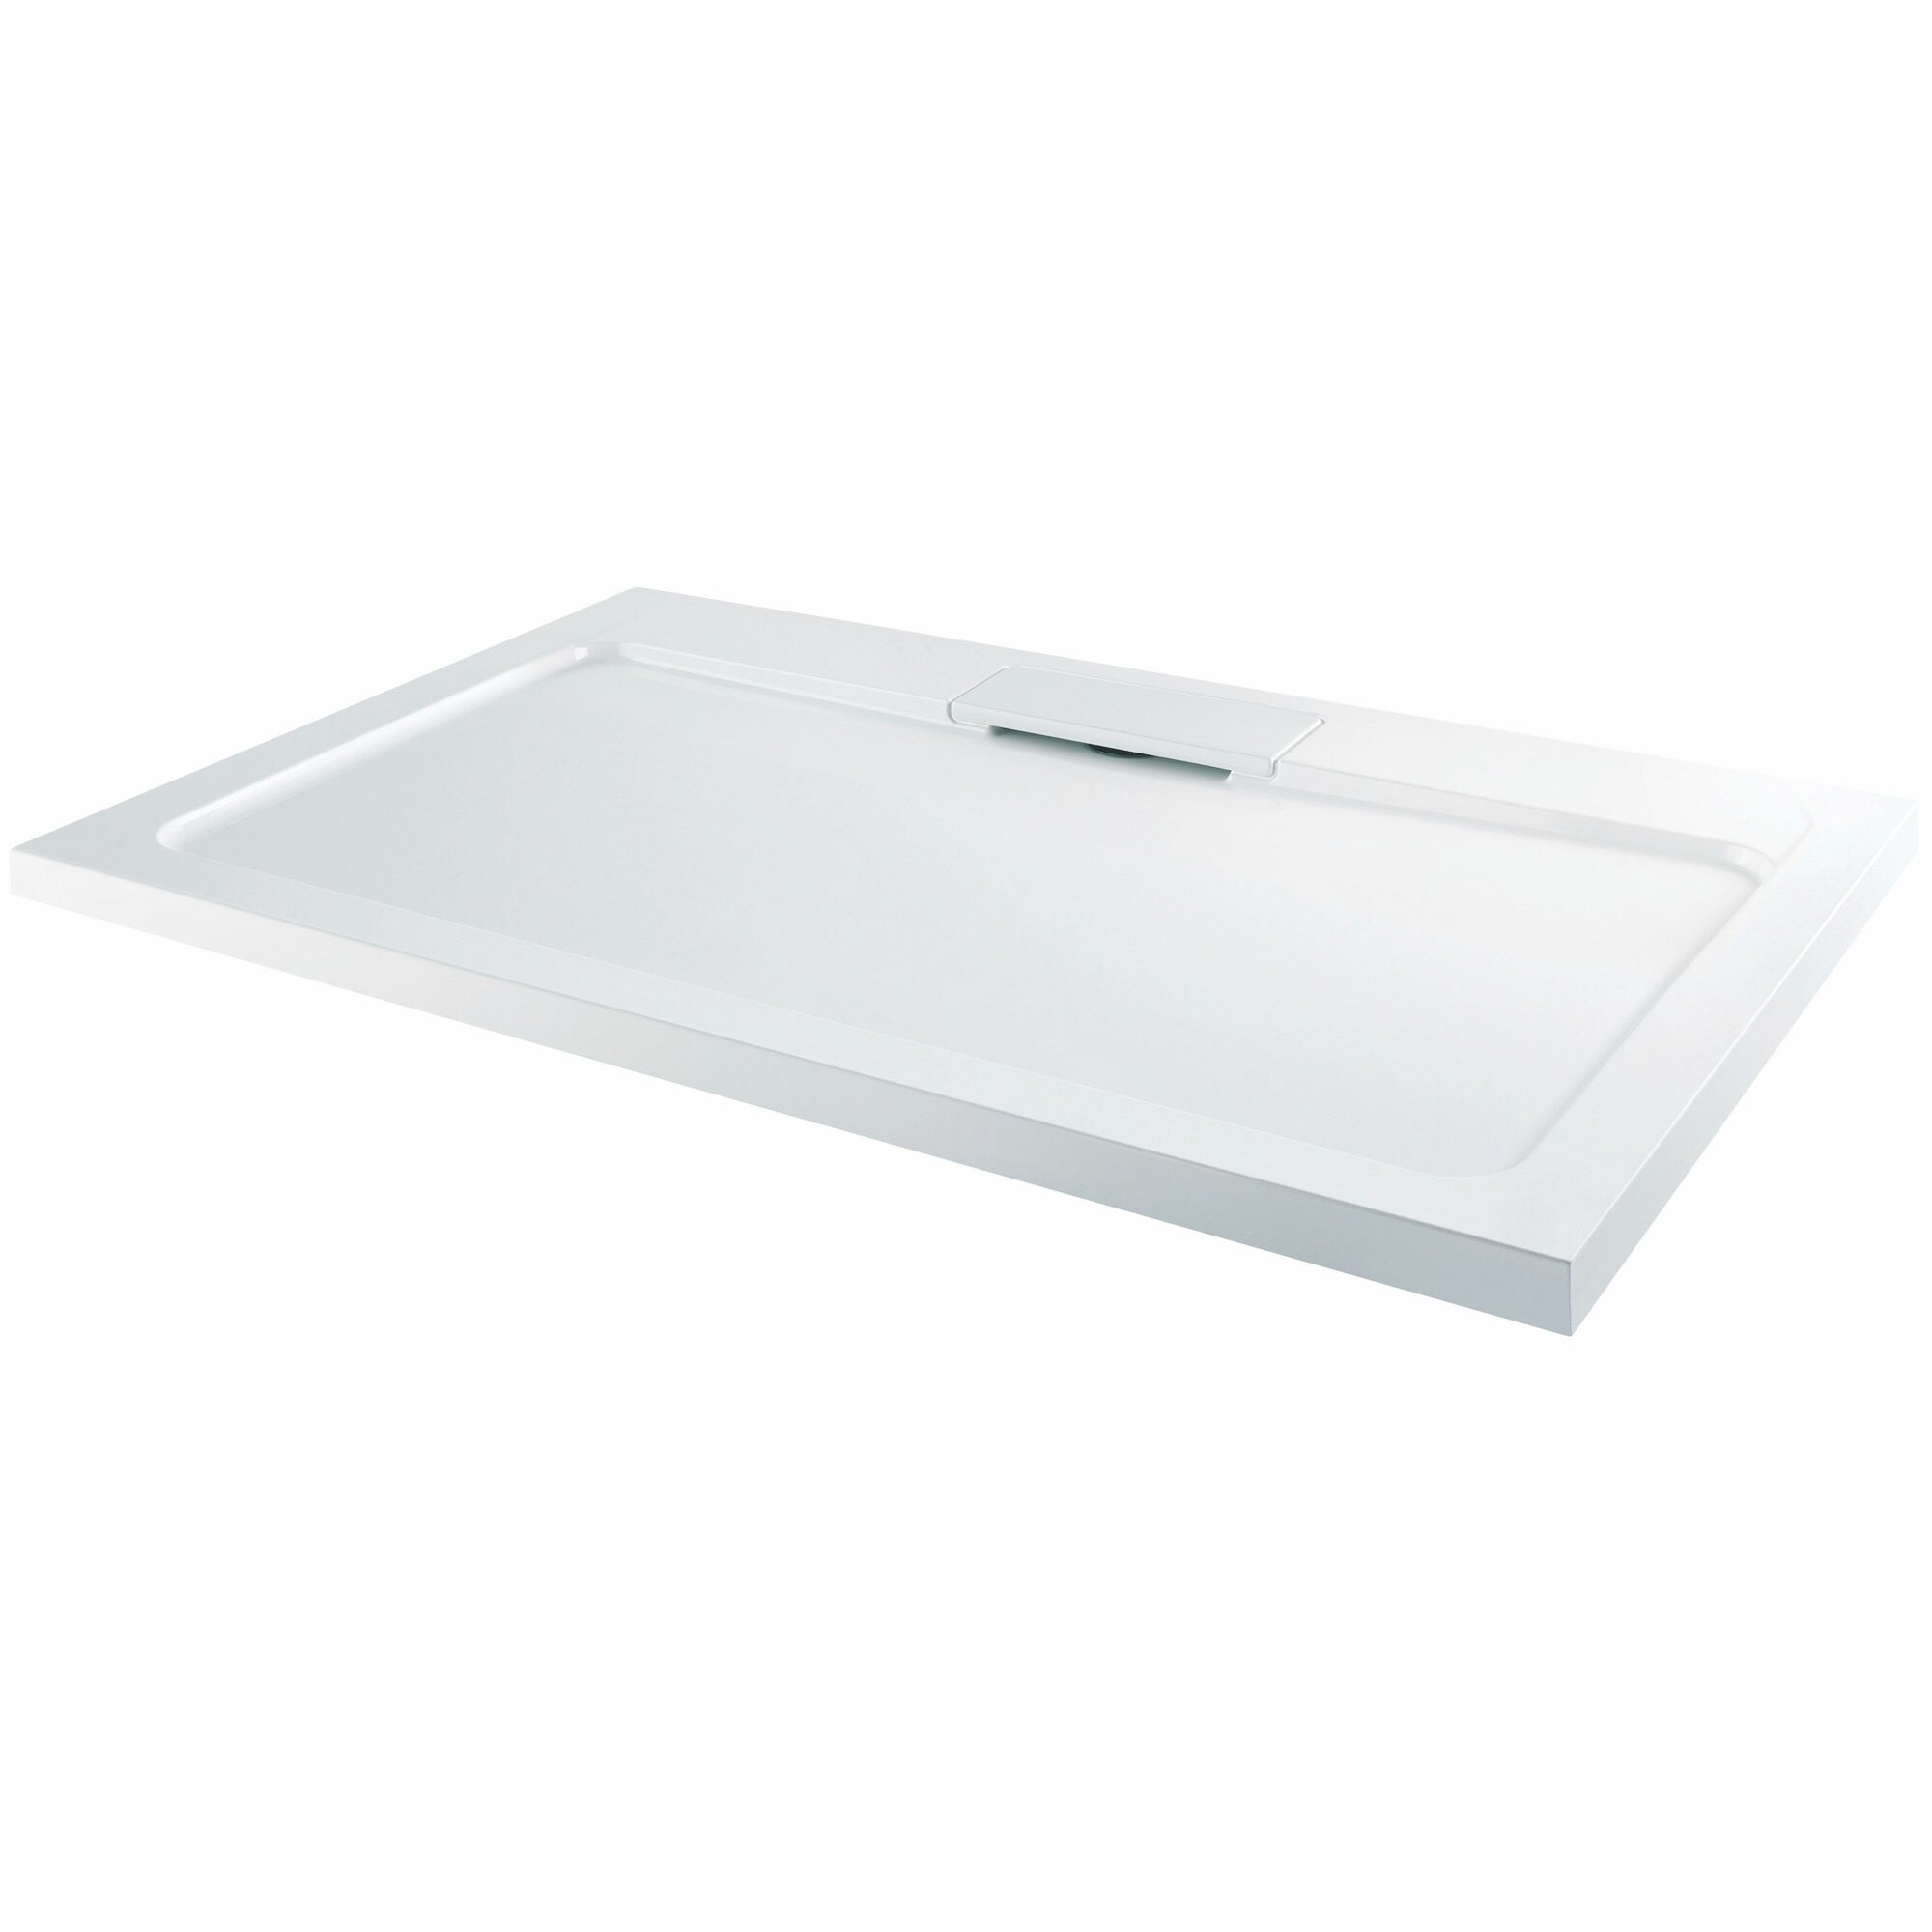 Belfry Indus Low Profile Shower Tray Reviews Wayfair UK